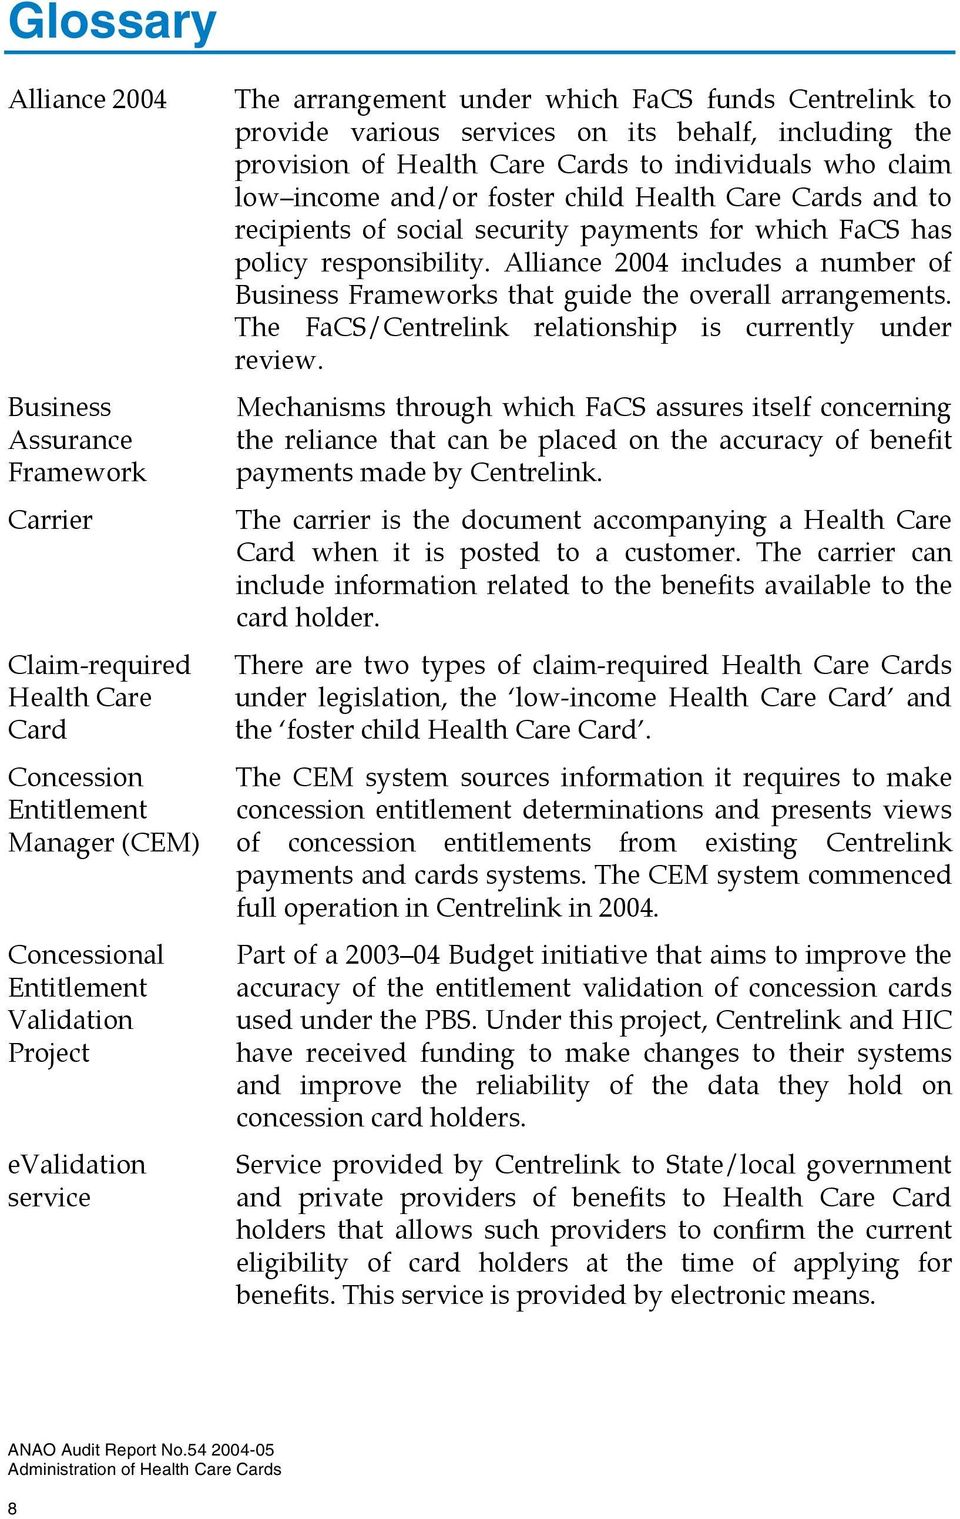 Care Cards and to recipients of social security payments for which FaCS has policy responsibility. Alliance 2004 includes a number of Business Frameworks that guide the overall arrangements.